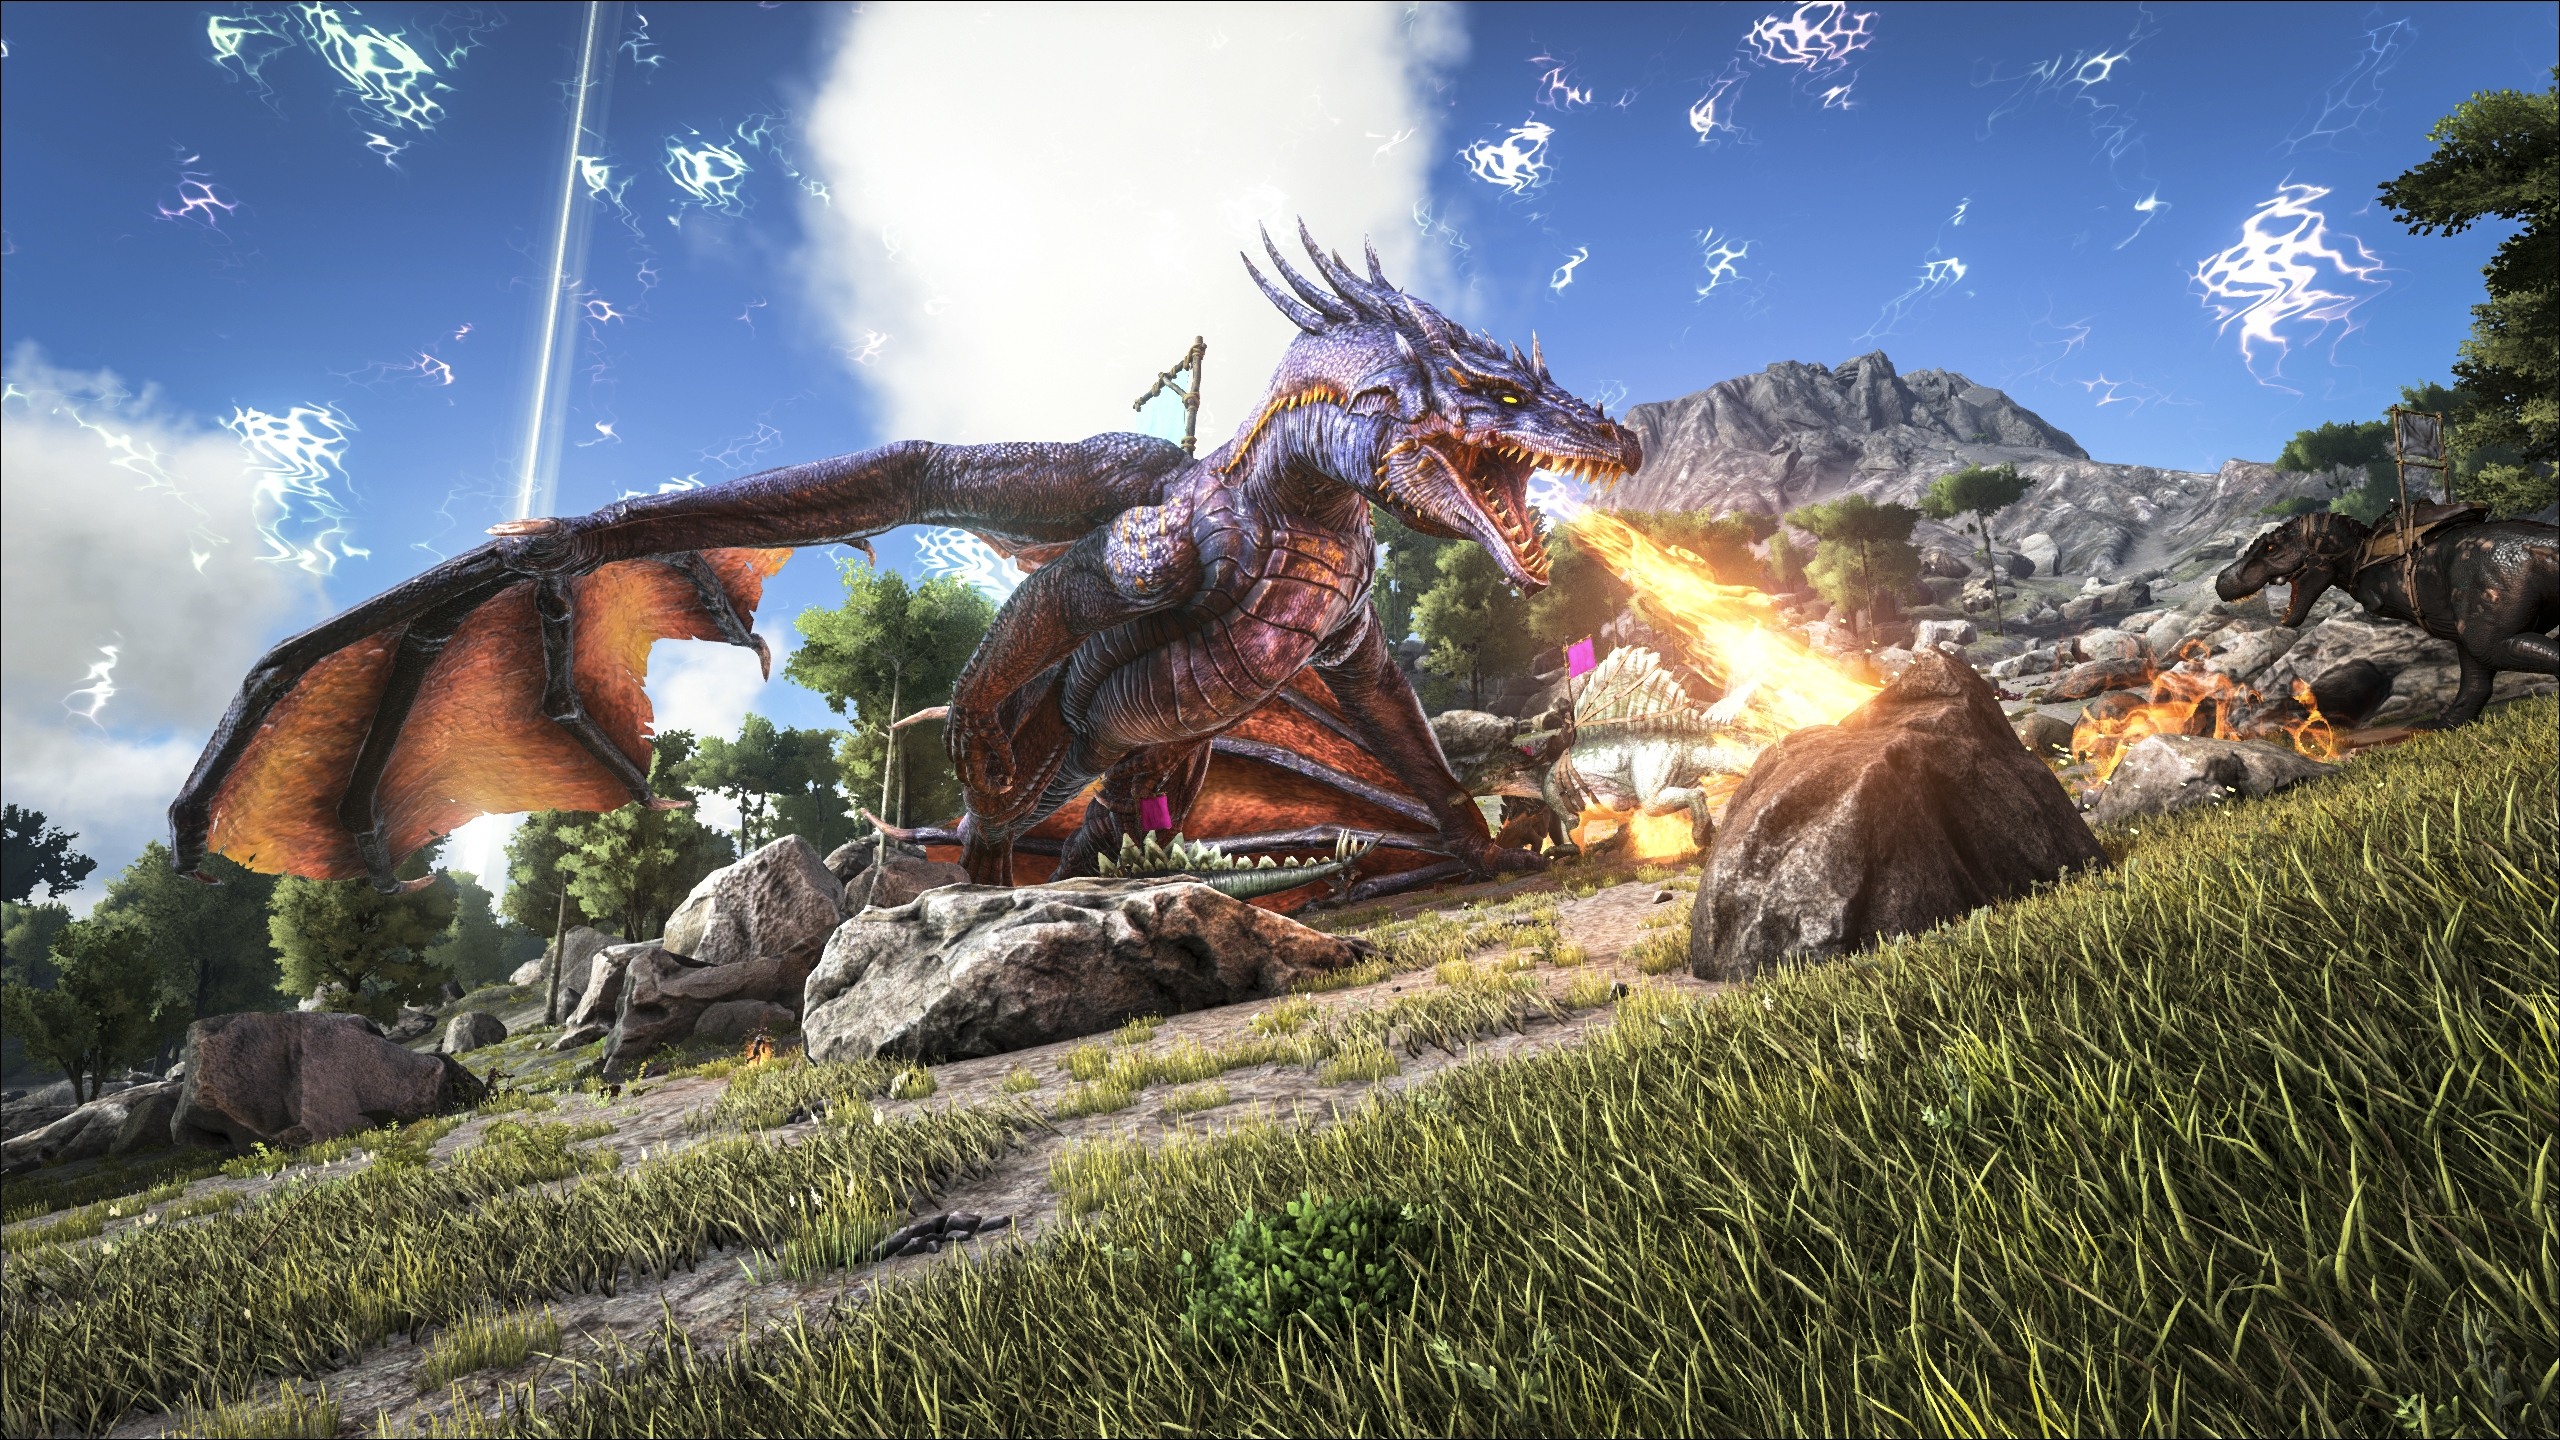 Ark isn't afraid to throw some seriously scary dinosaurs at players.